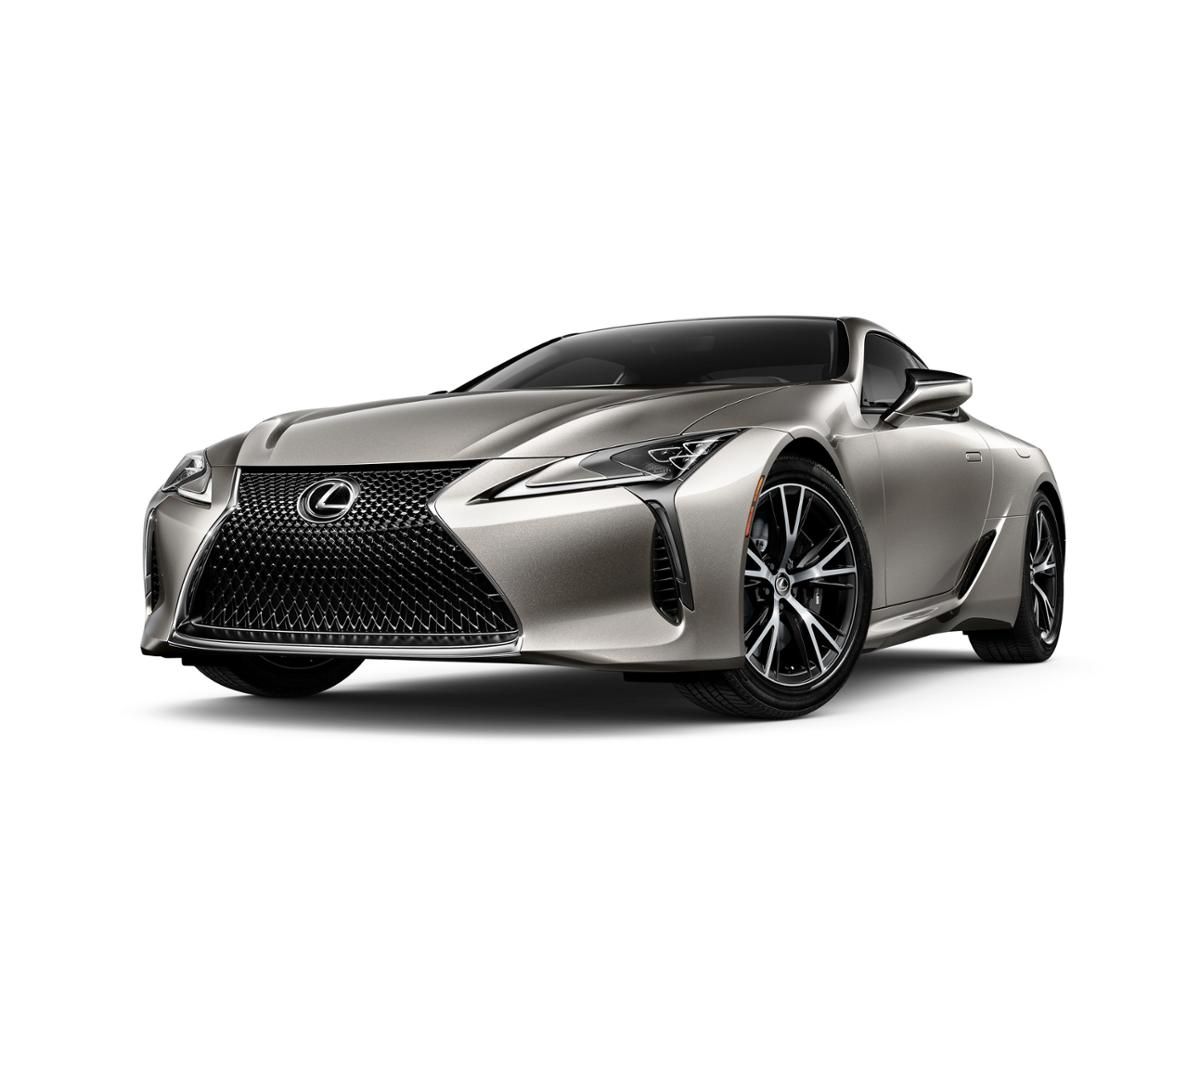 2019 Lexus LC 500 Vehicle Photo in Santa Barbara, CA 93105